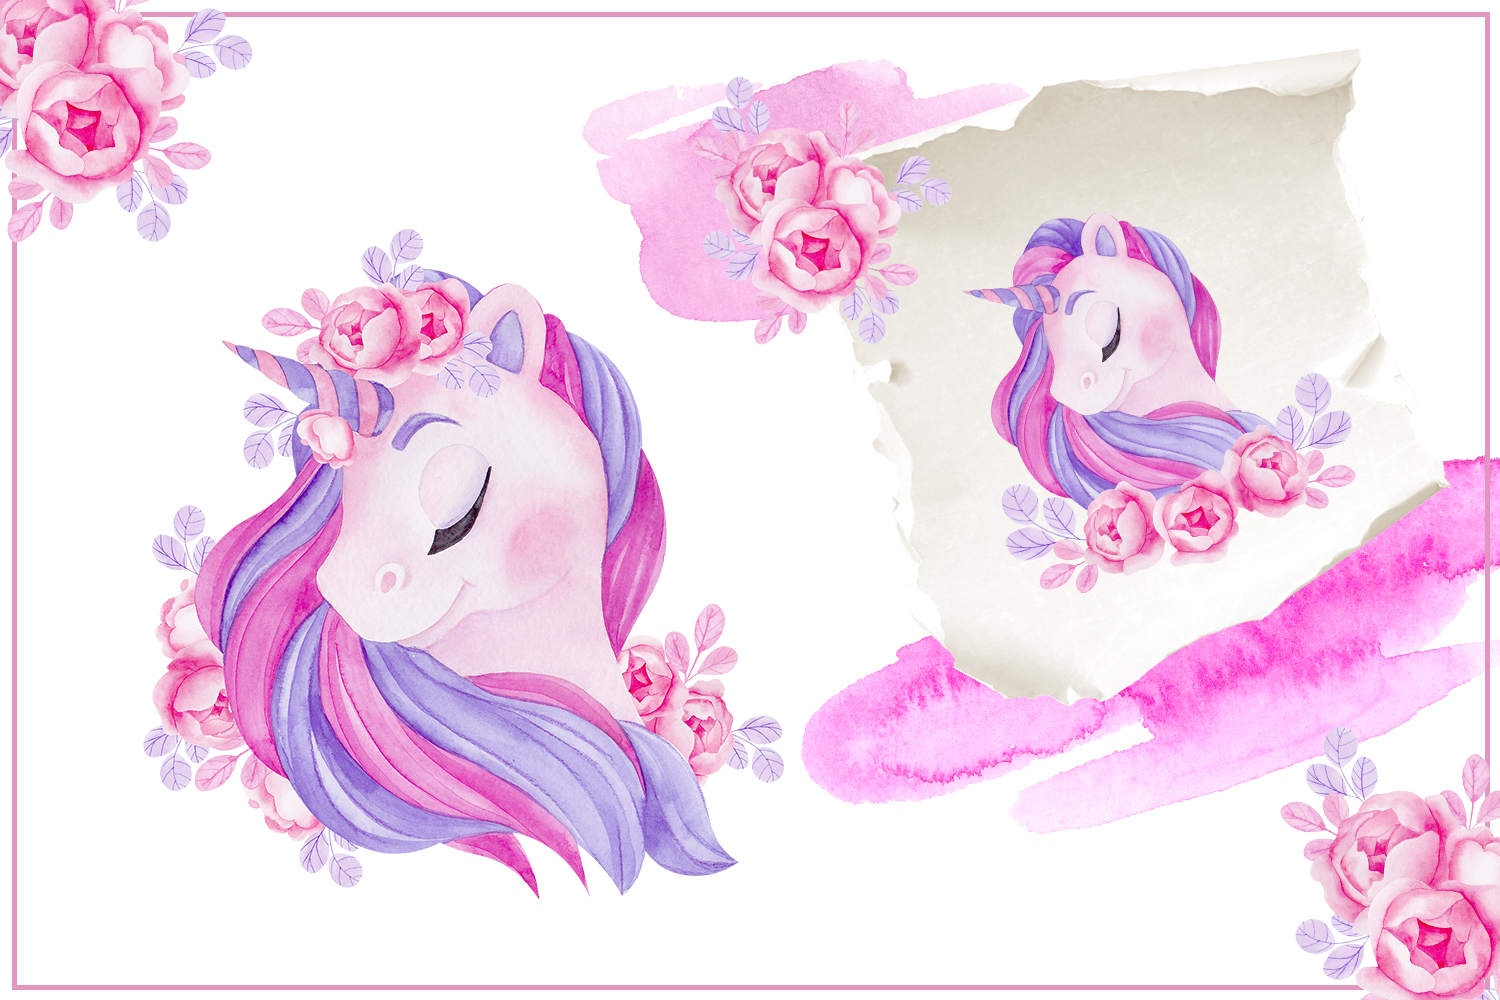 Cute unicorn. Illustrations and alphabet example image 5